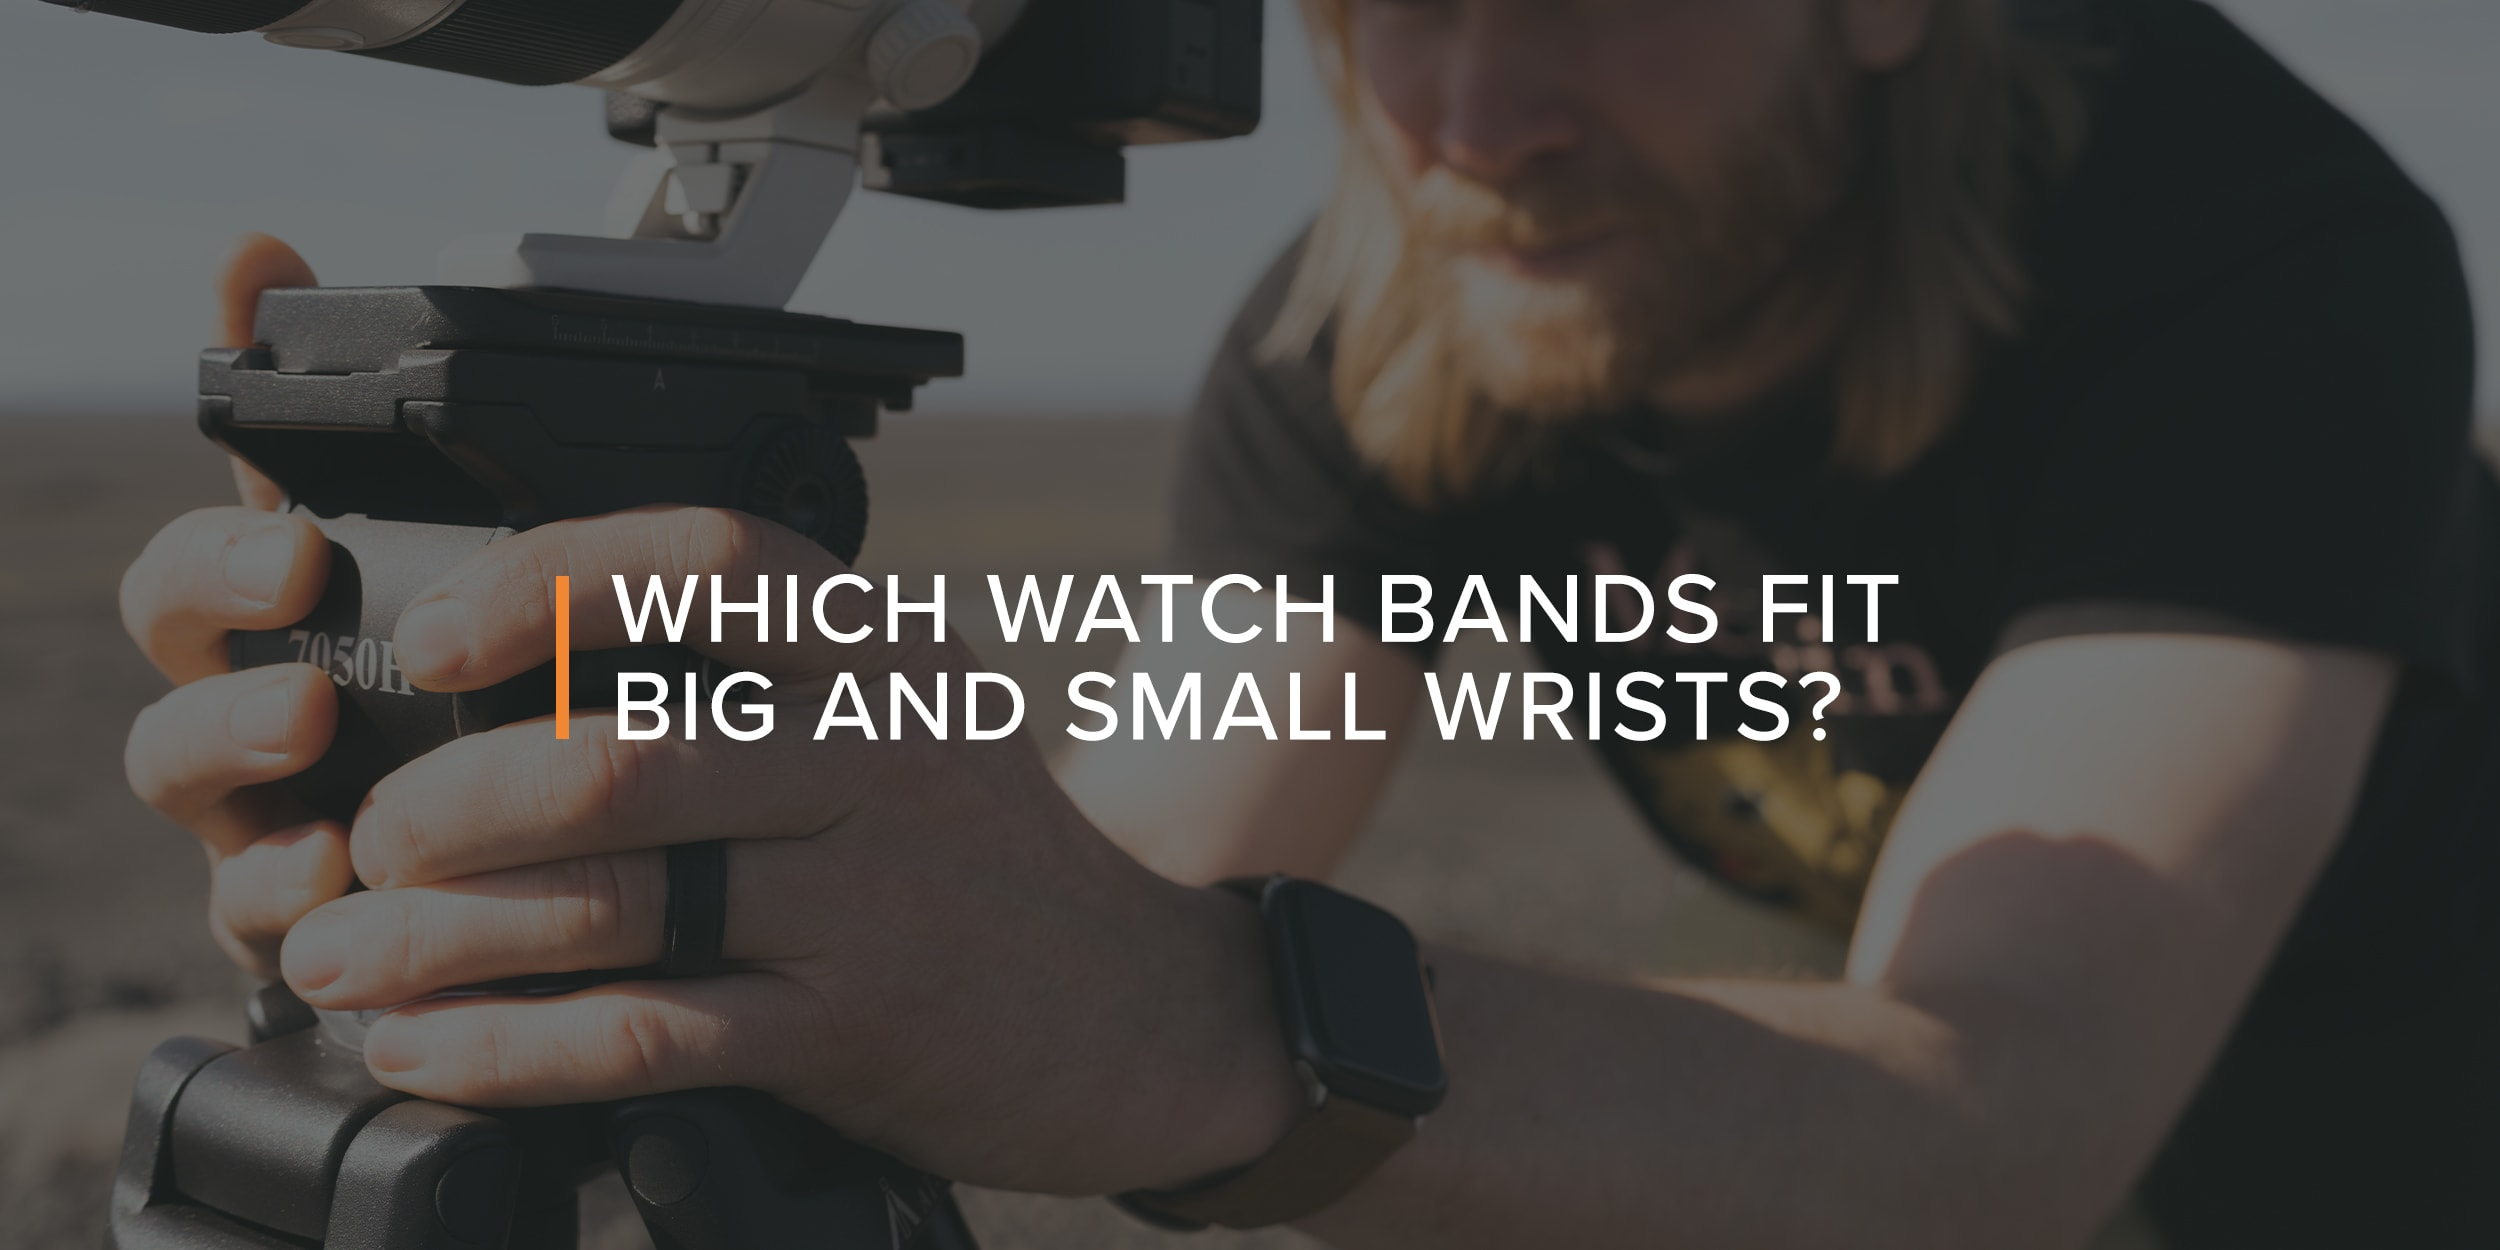 Which watch bands fit big and small wrists?